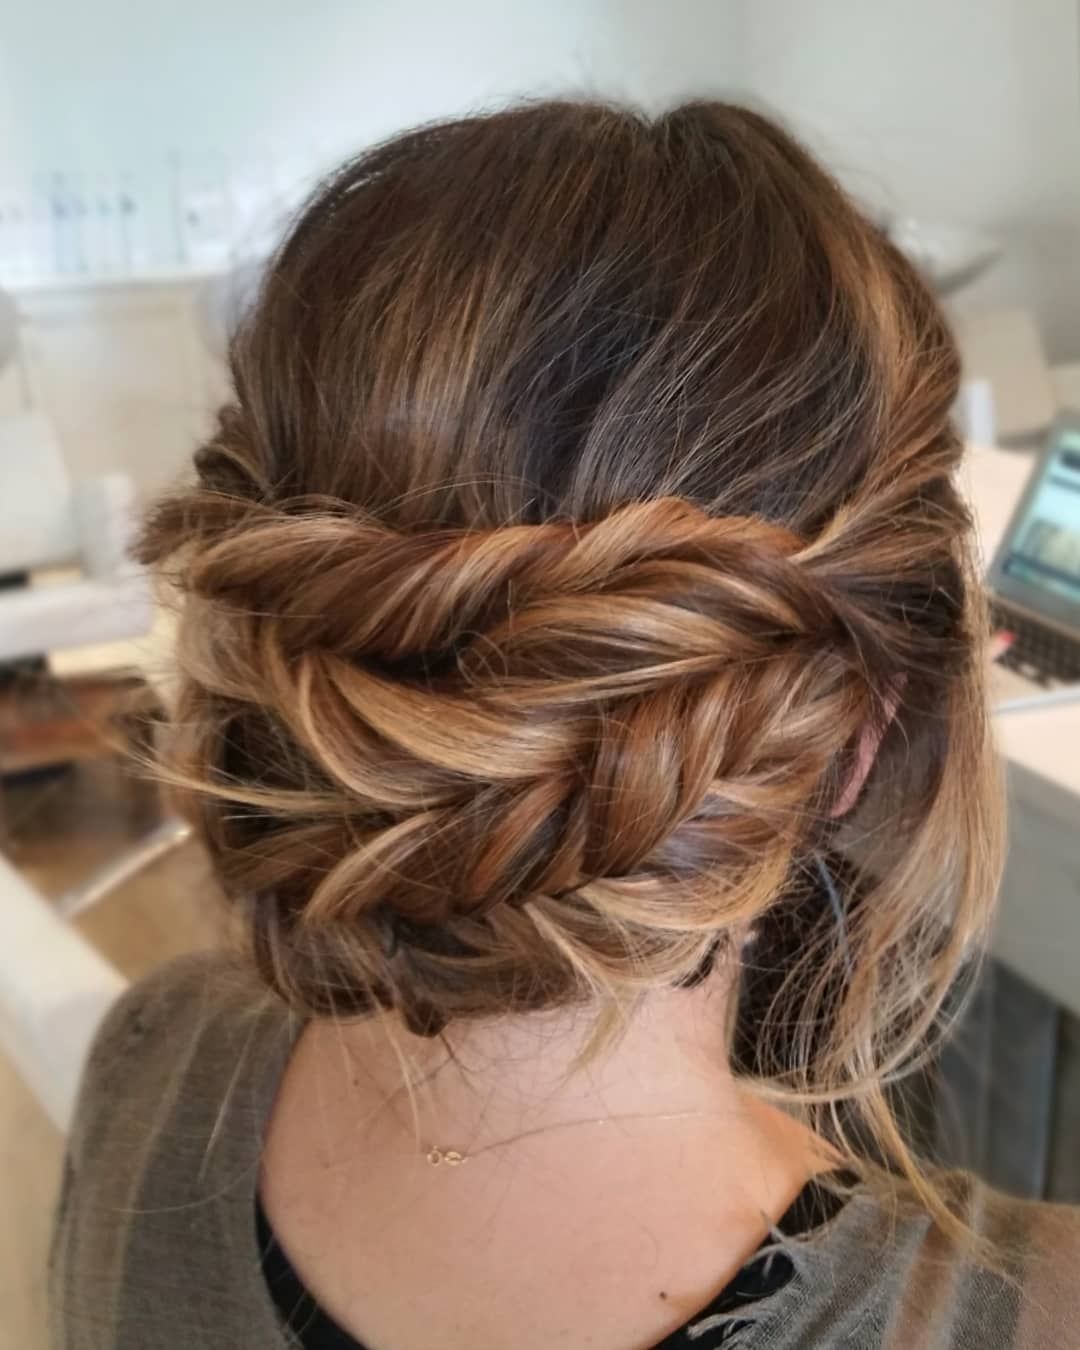 Braid Hairstyles For Wedding Party: Beautiful Whimsical Braided Updo